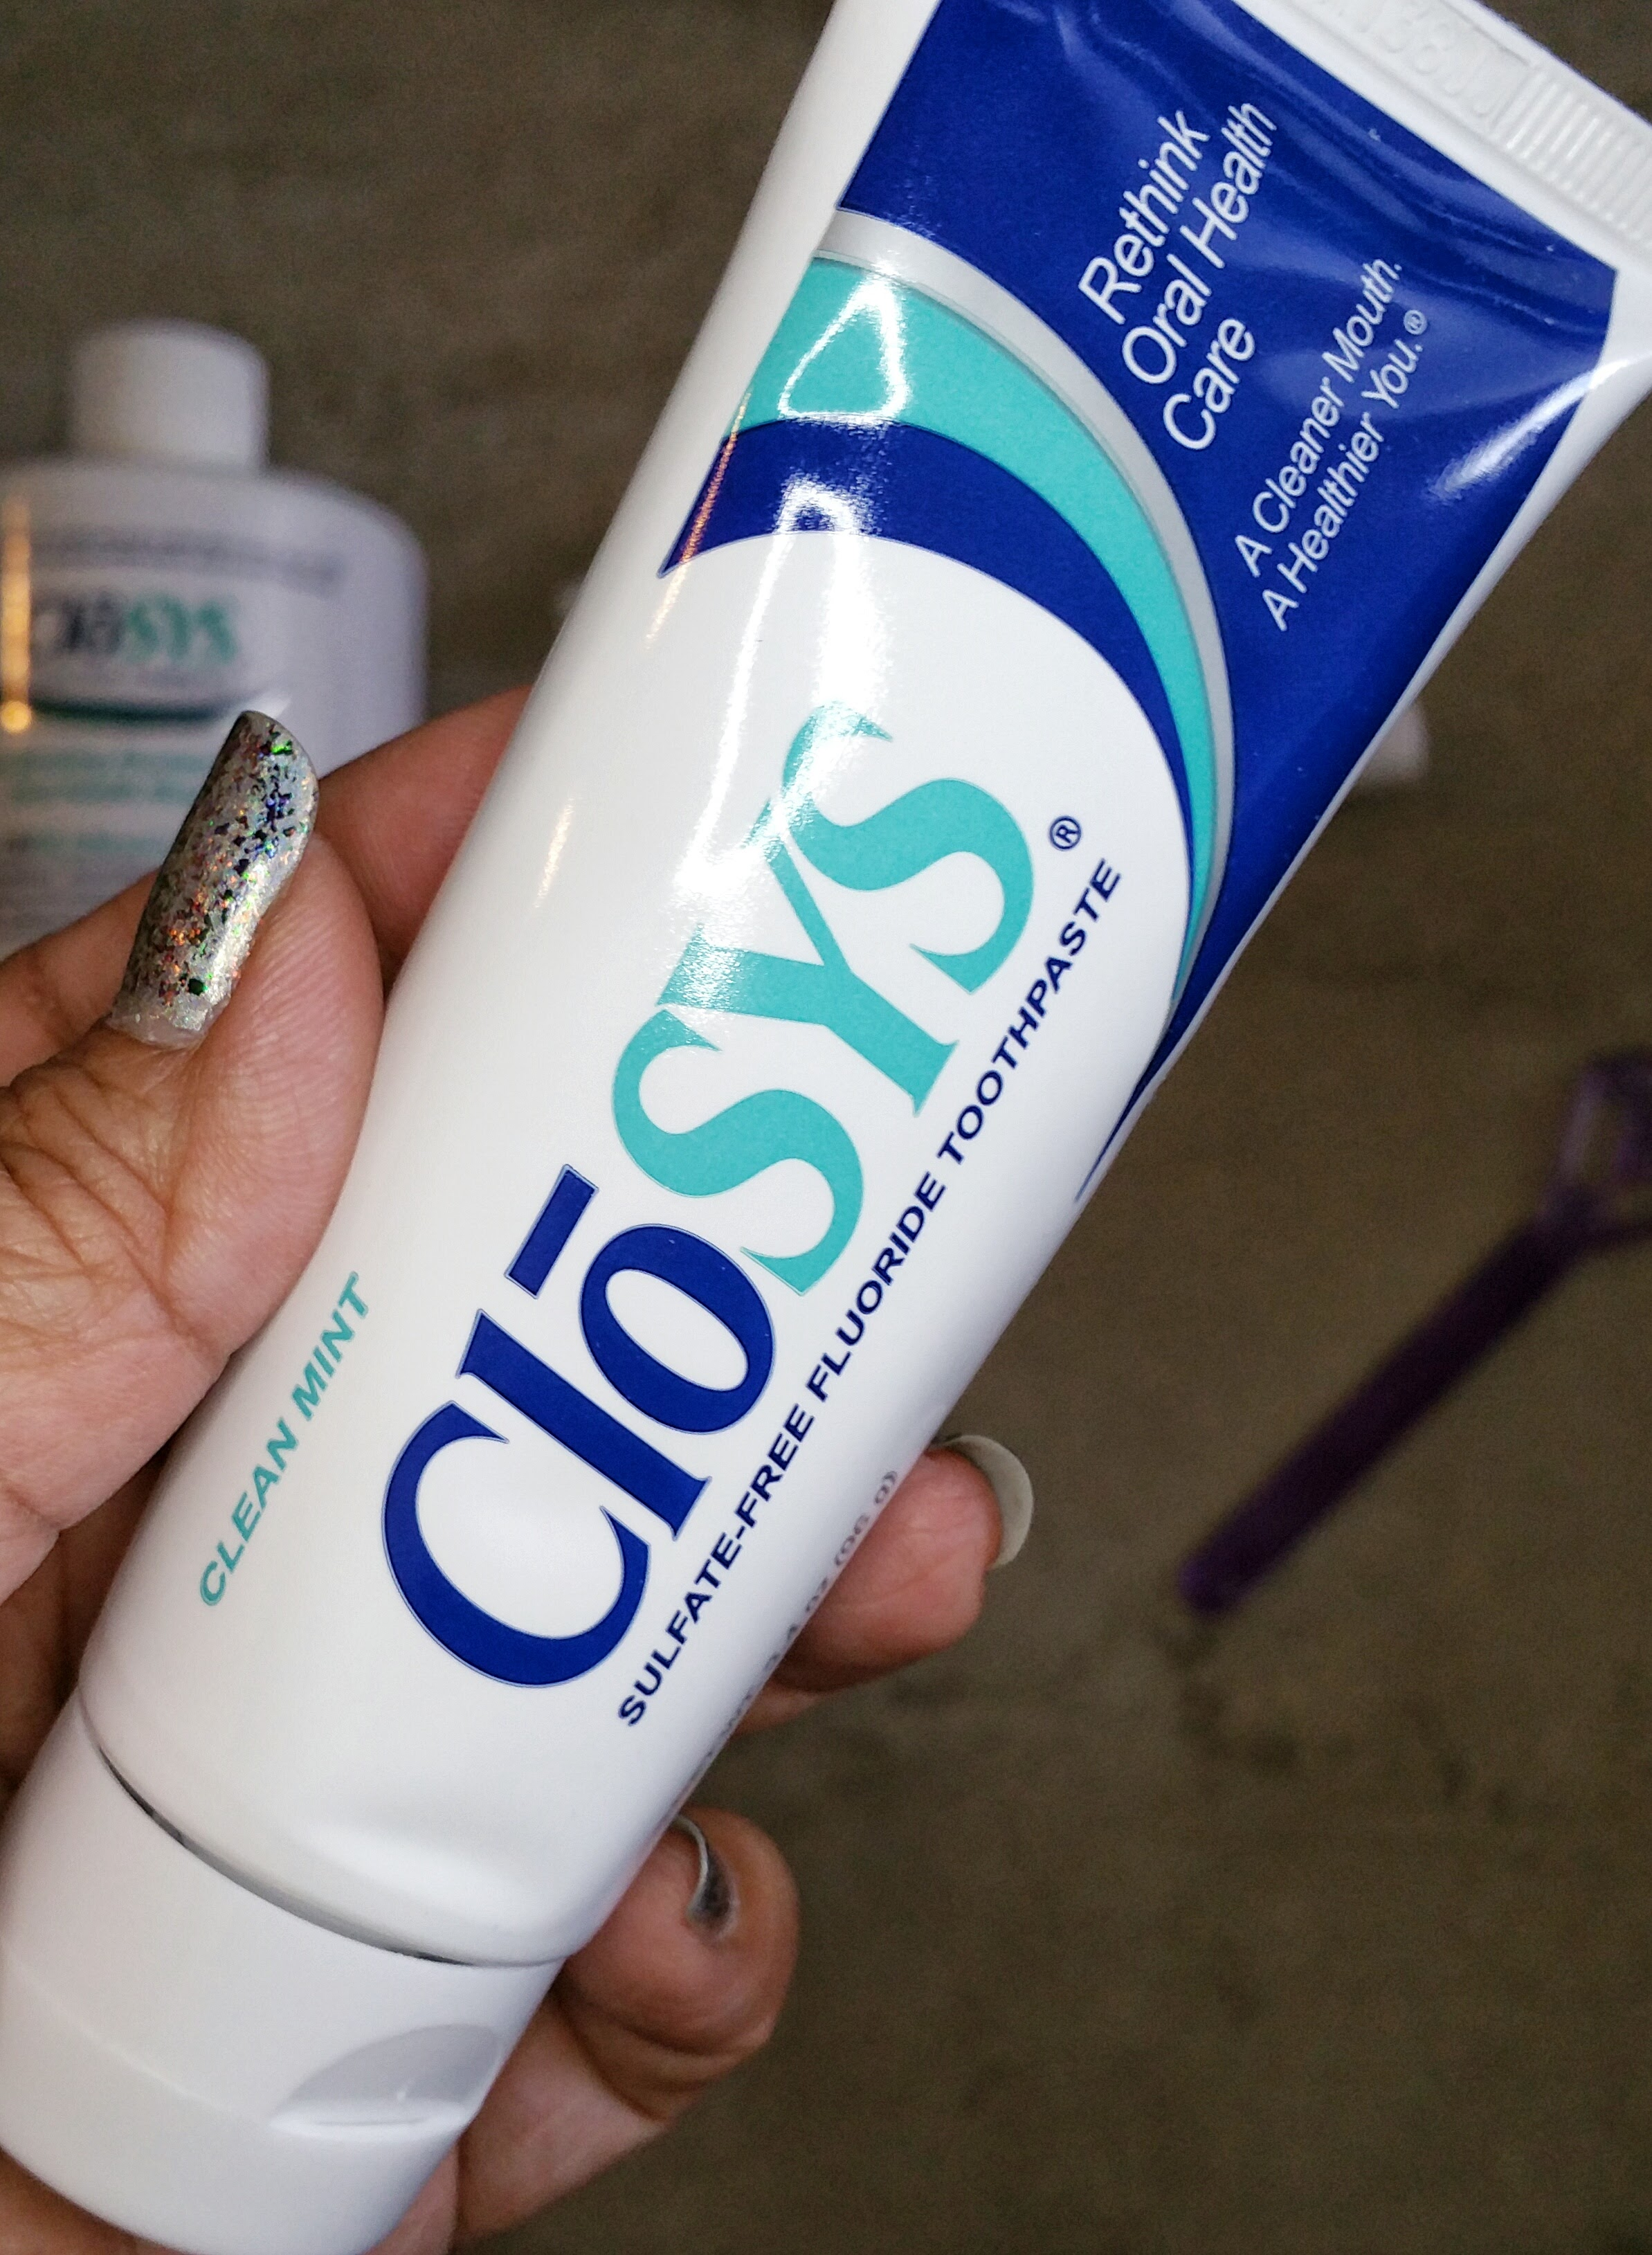 CloSYS, Teeth, teeth cleaning, teeth whitening, oral hygiene, alcohol free oral health care, health care, oral health care, CloSYS teeth, review, beauty, skin, health,